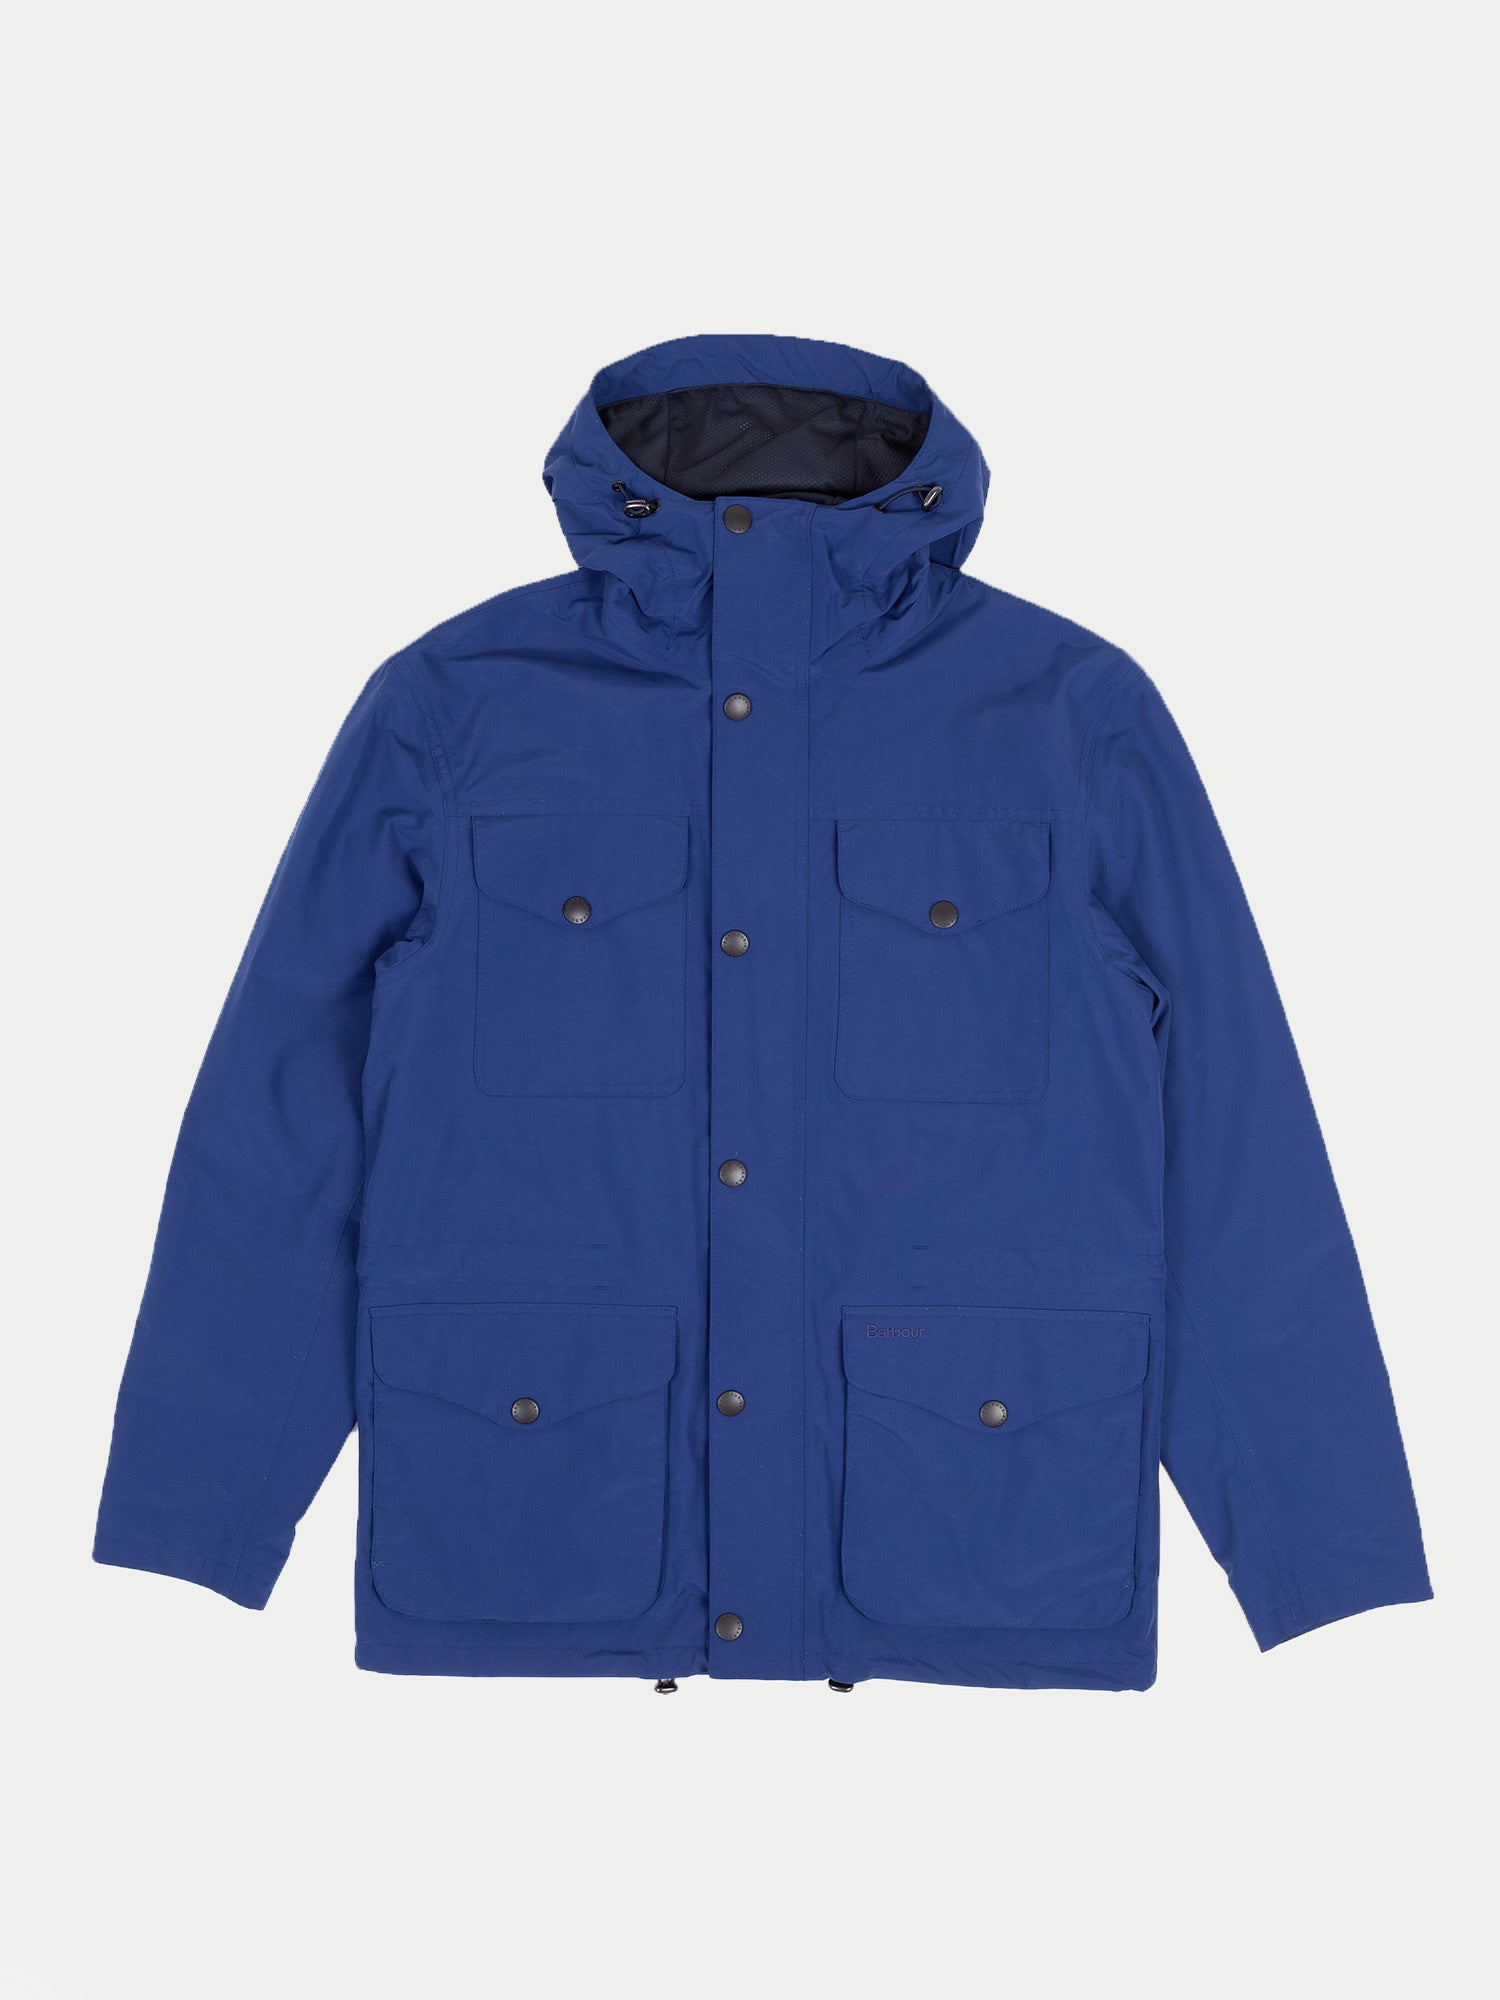 Barbour Richmond Jacket (Inky Blue)